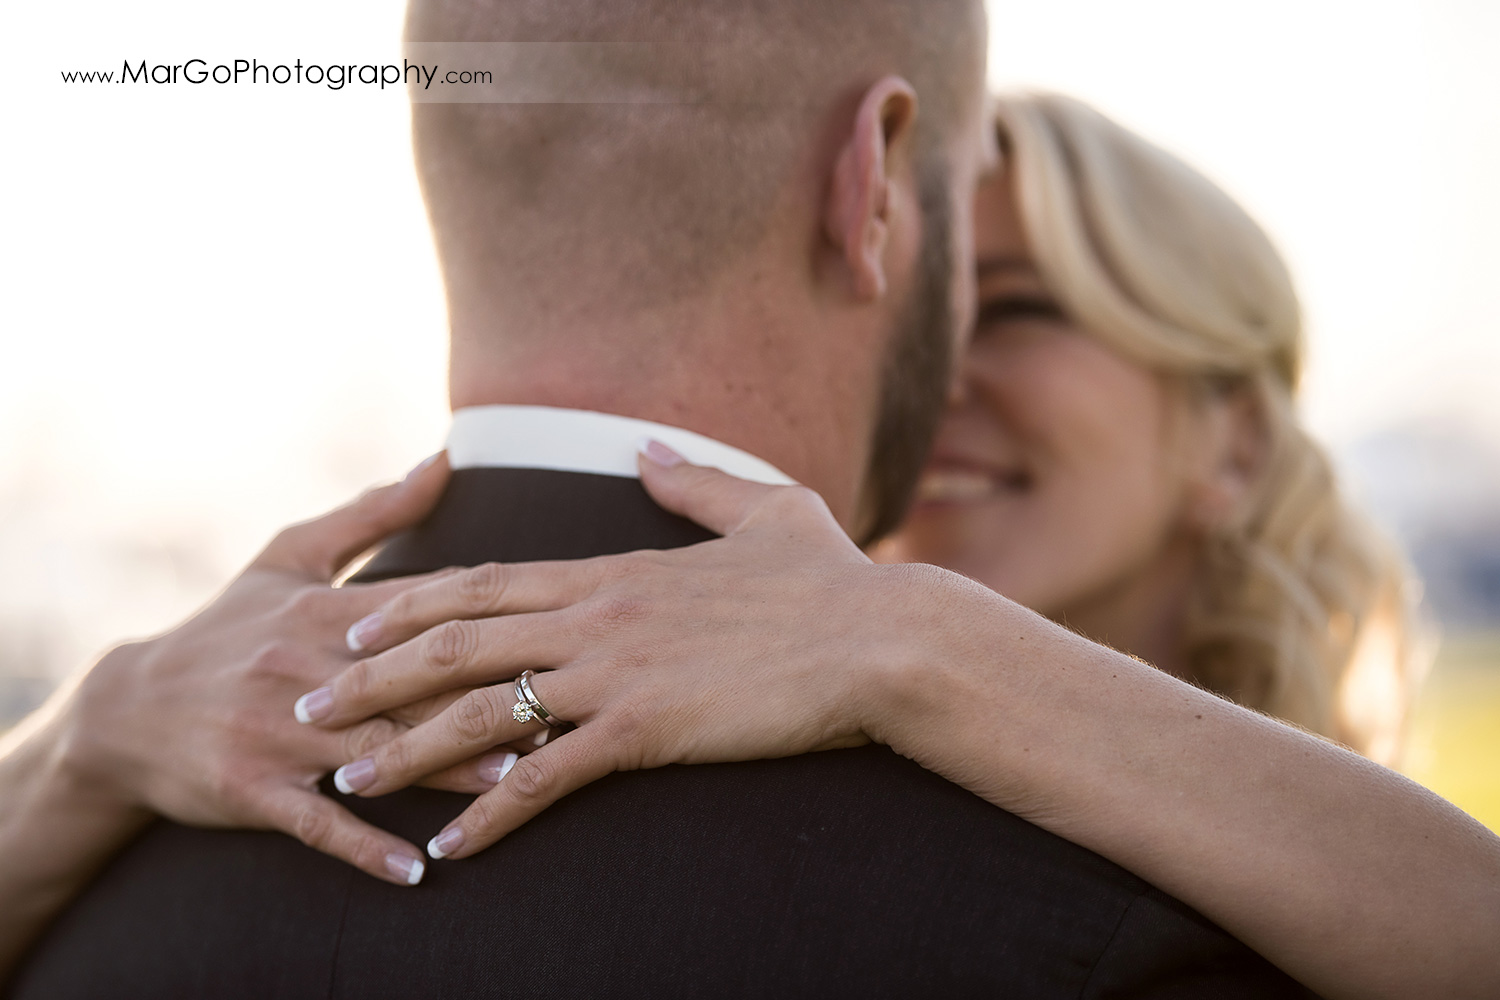 bride holding hands on groom's neck and showing wedding rings at San Diego Marina Village